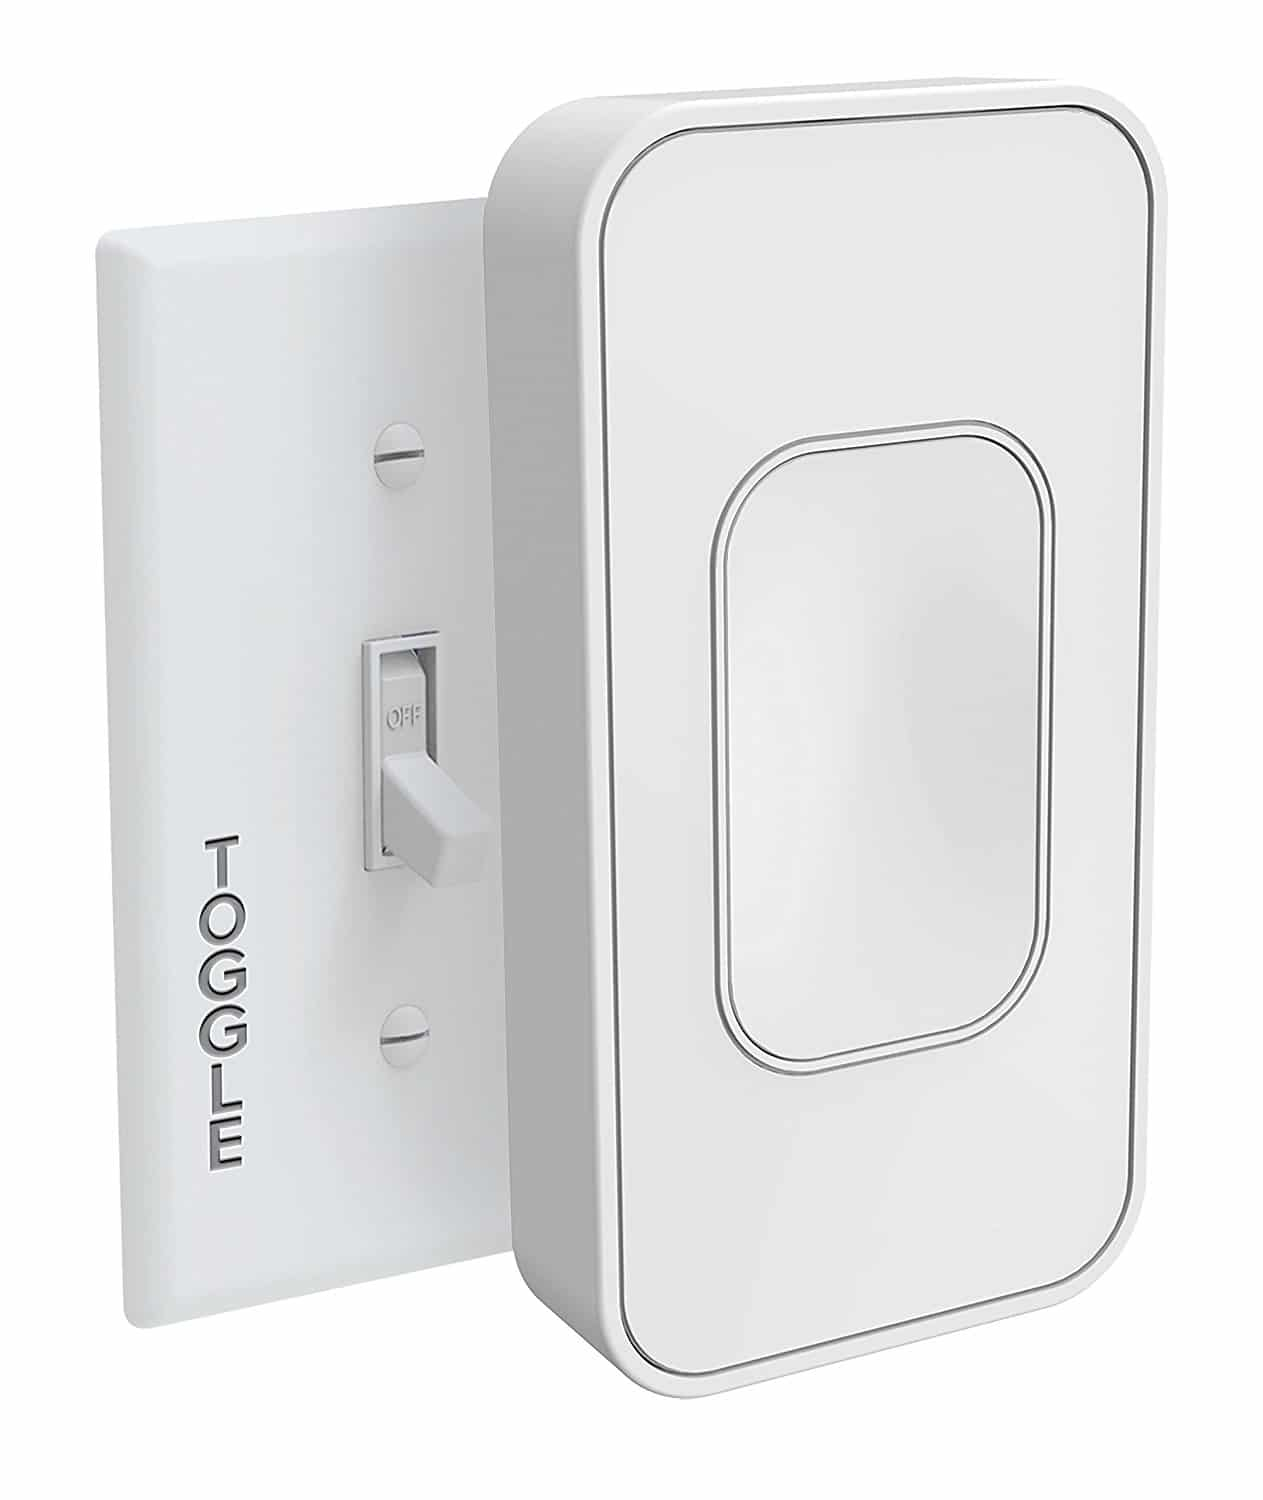 Affordable Lighting Canada The Best Smart Wifi Light Switches And Plugs You Need 2019 Review